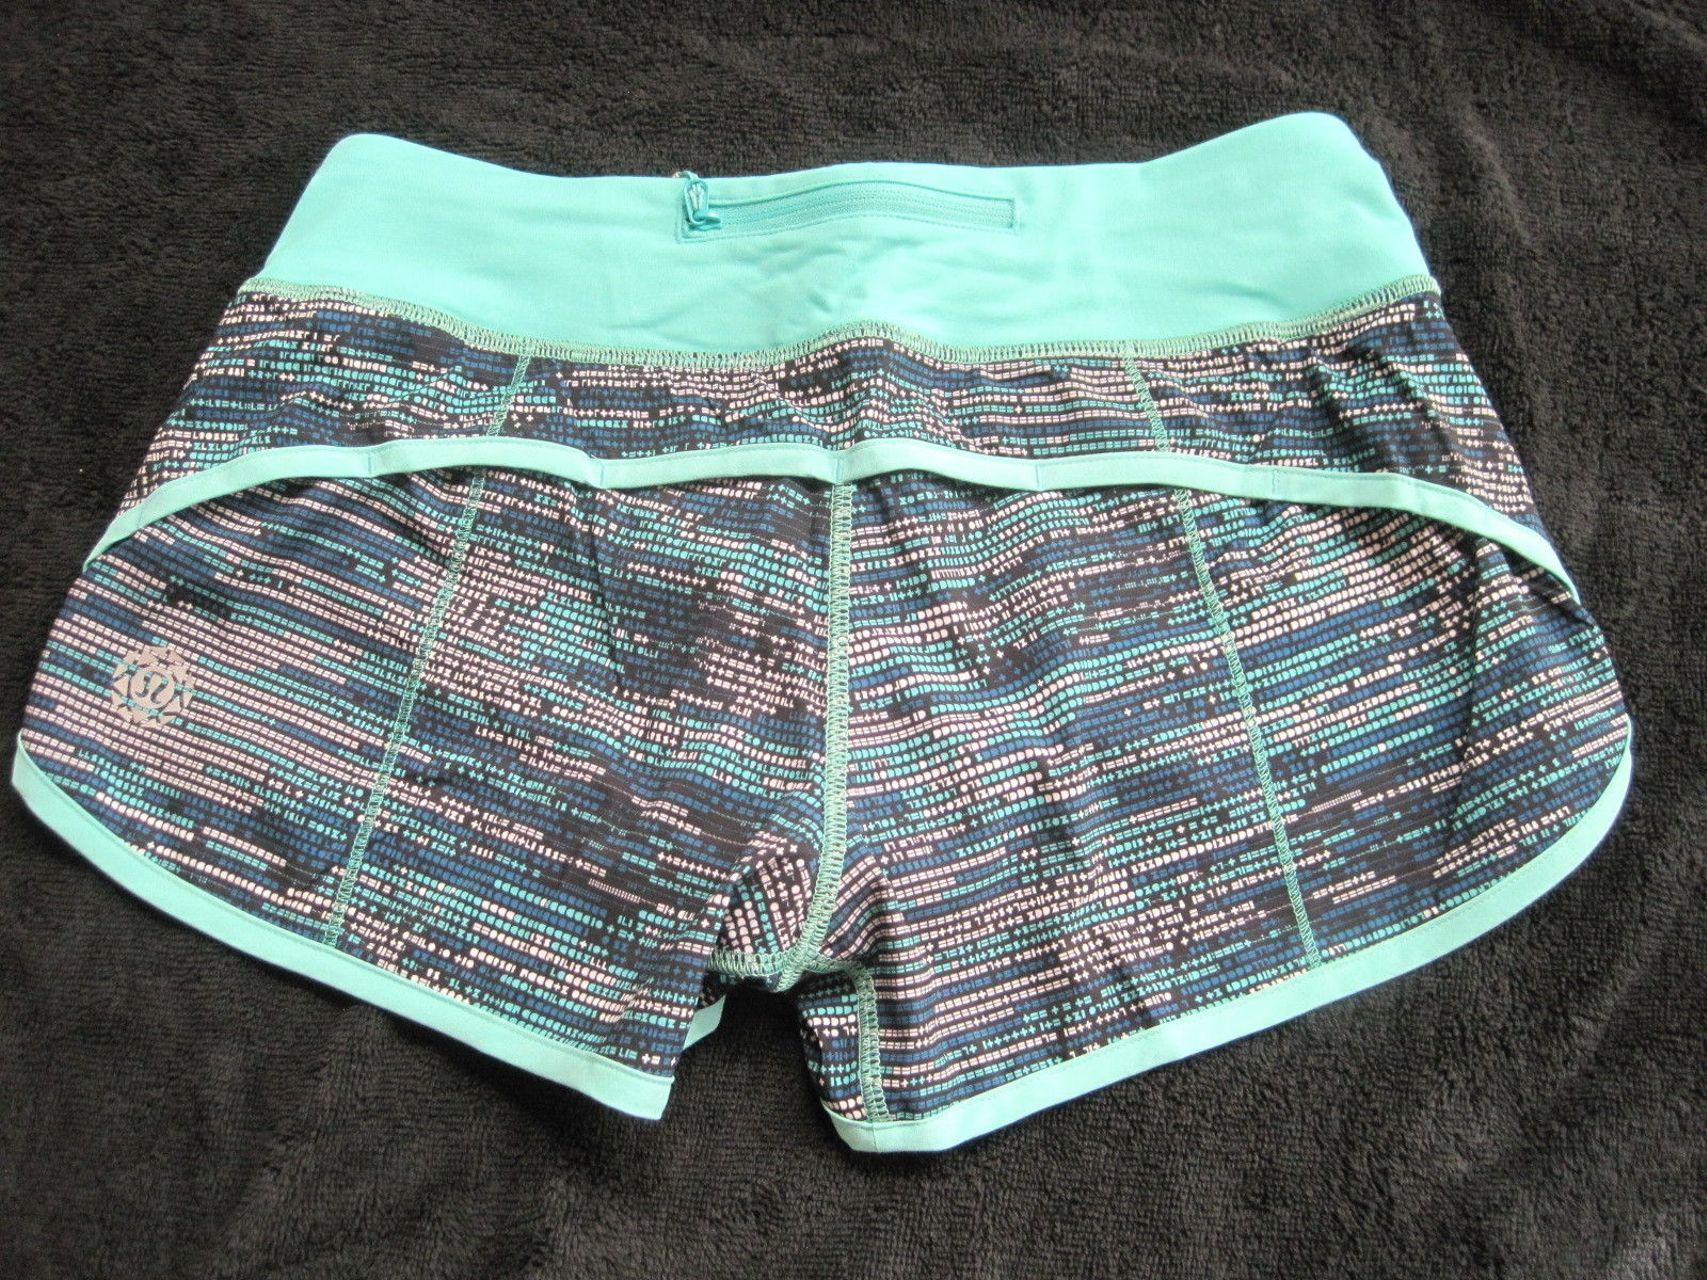 Lululemon Speed Short - 2016 Seawheeze - ASCII Bali Breeze Tofino Teal / Bali Breeze